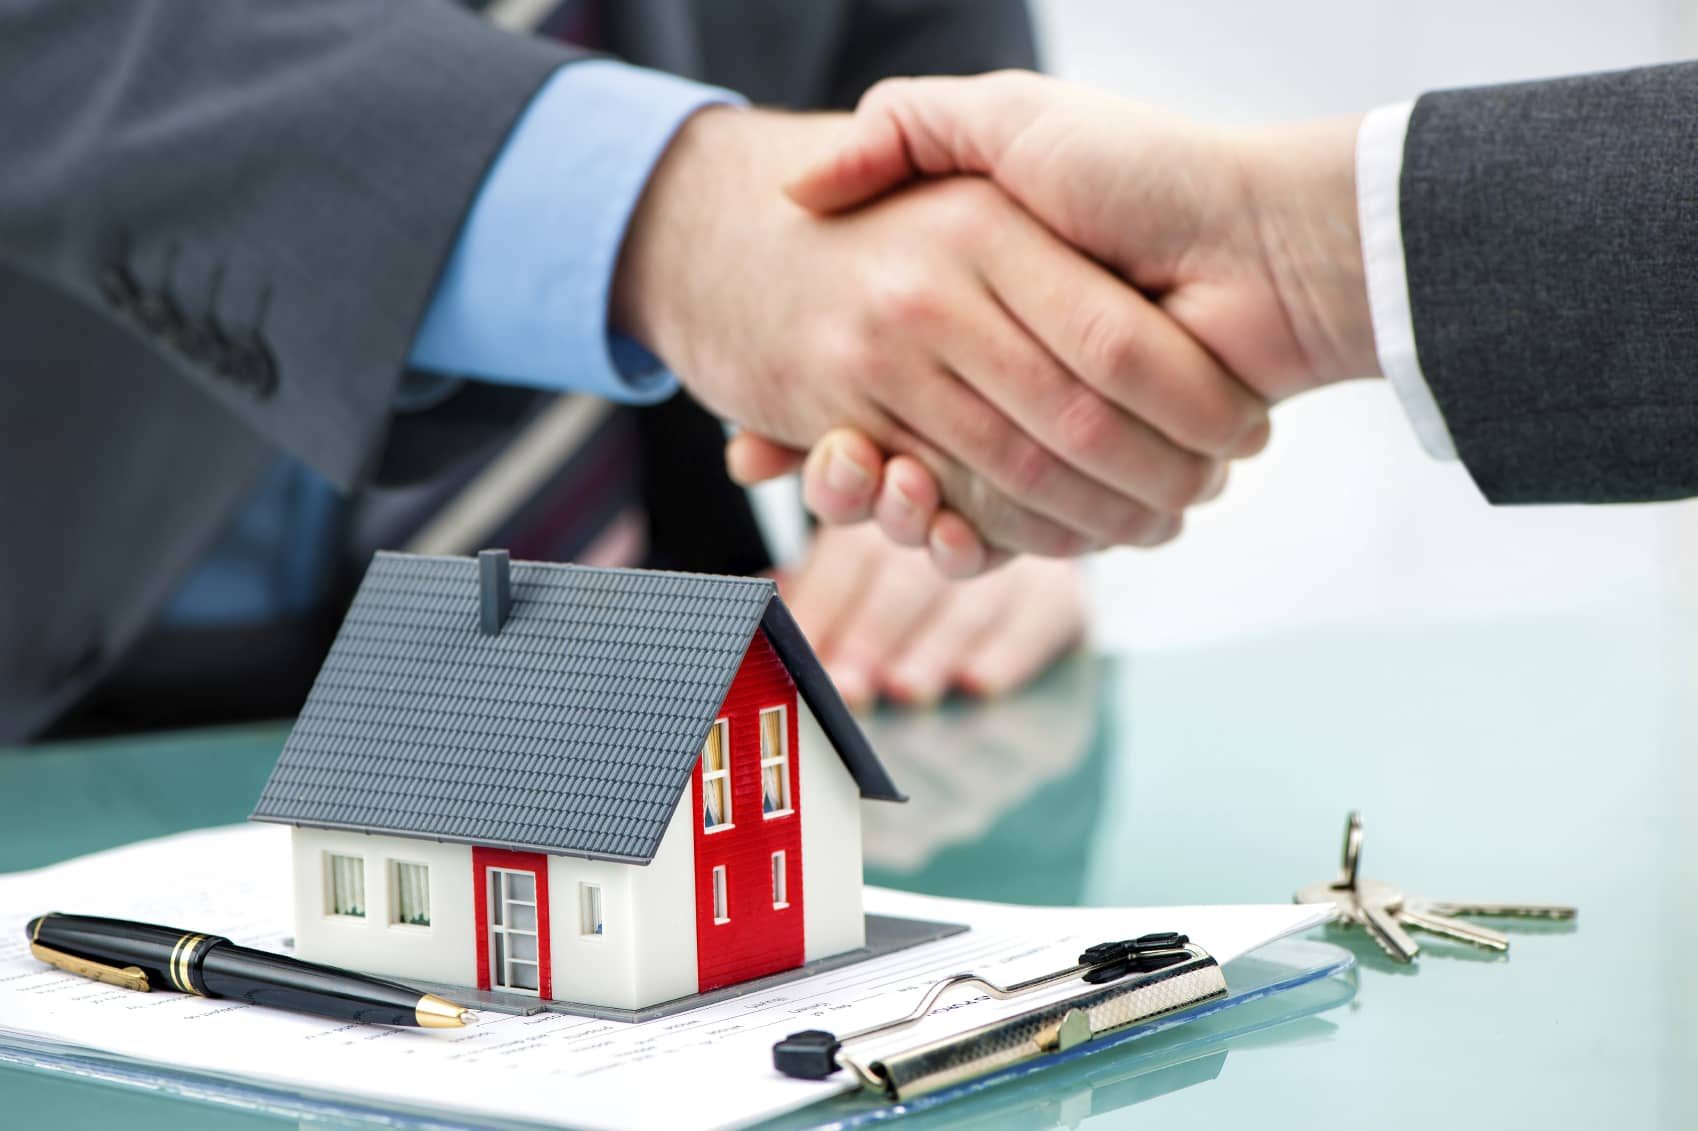 Tips For Those Looking For a Home Mortgage Lender In Houston